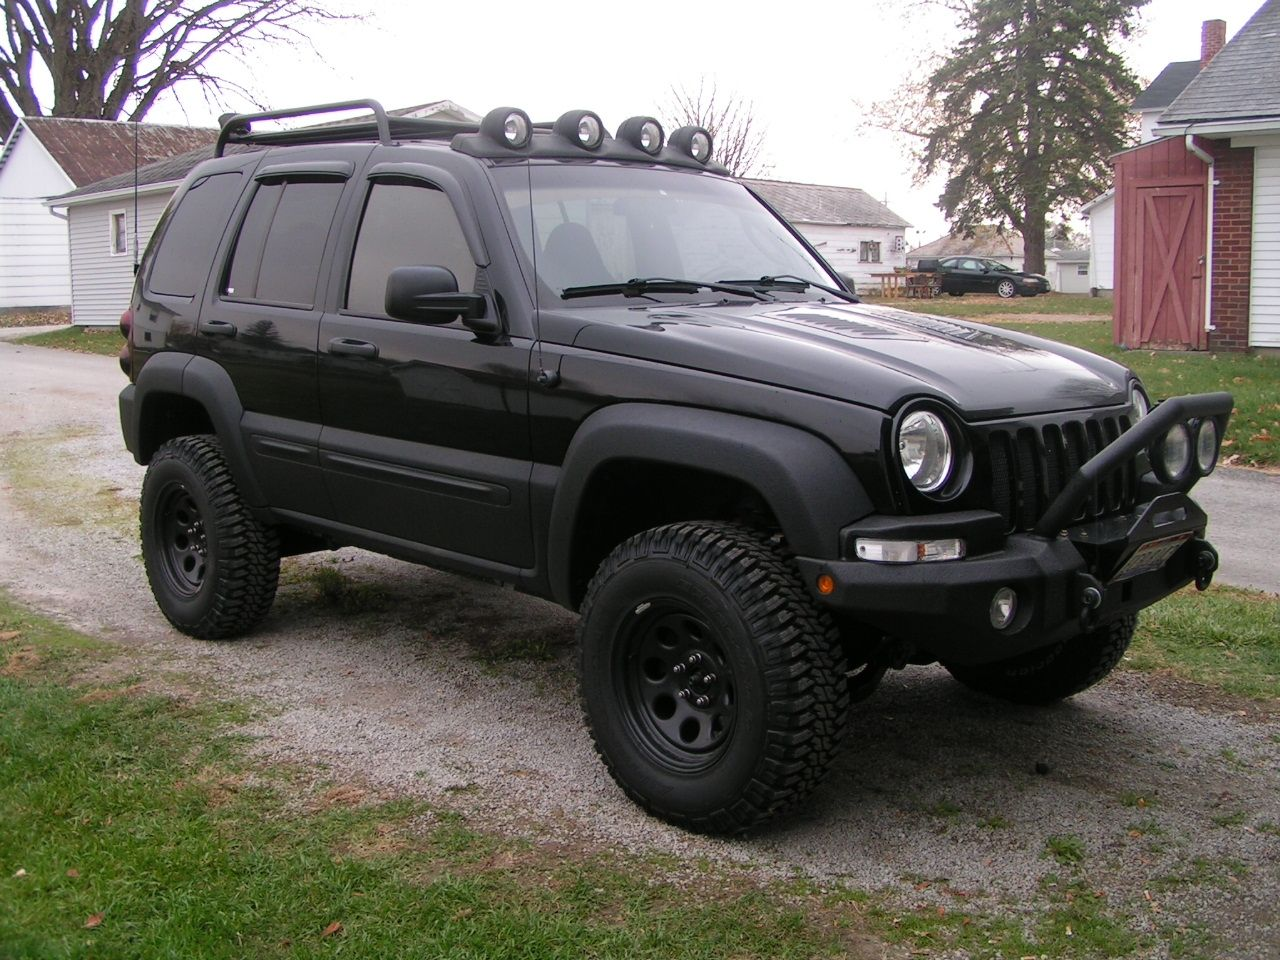 2003 JEEP LIBERTY SPORT 3.7L V6 Jeep liberty, Lifted